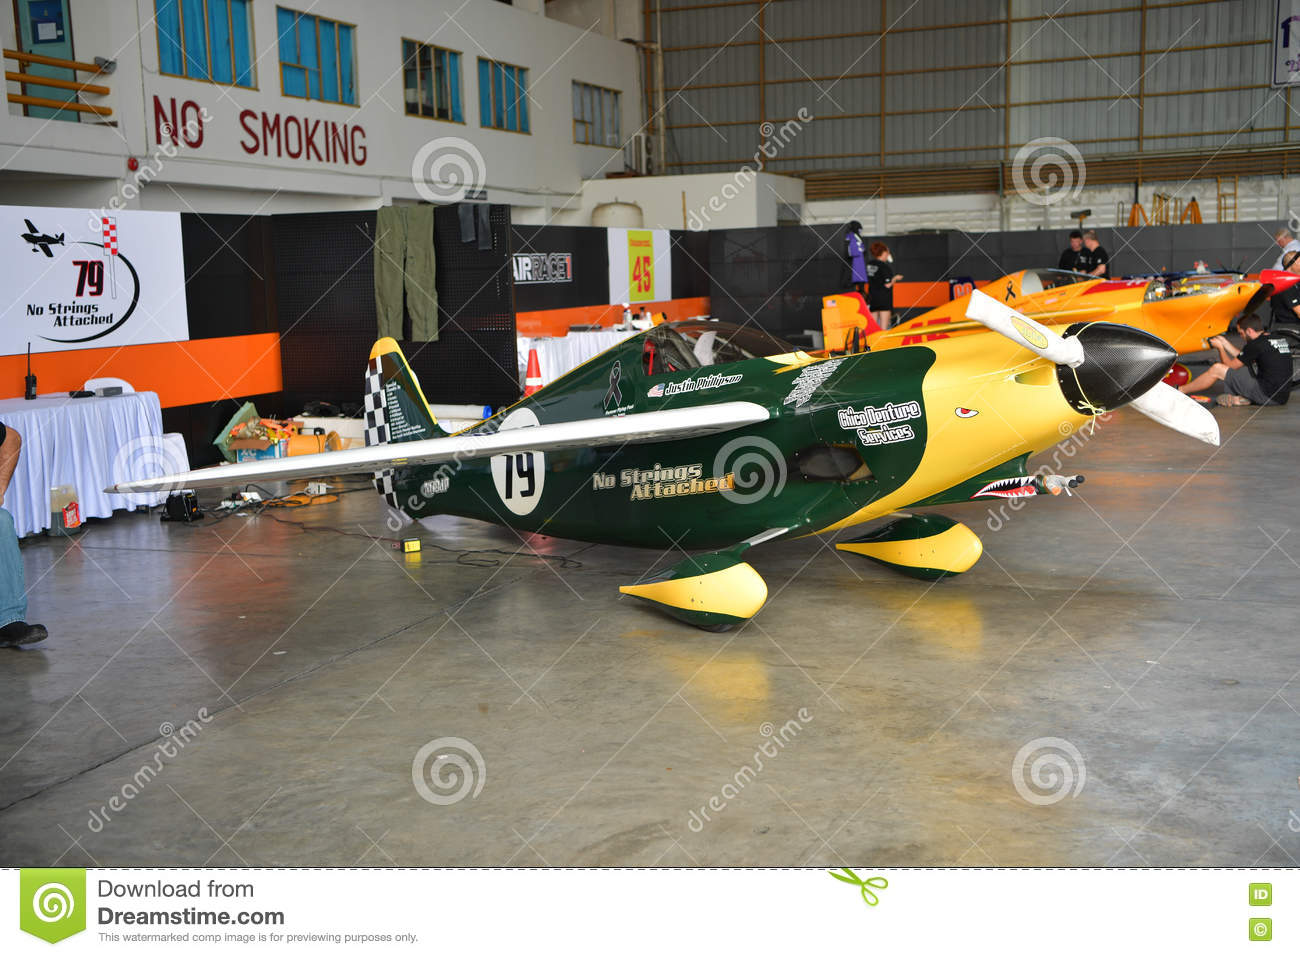 Air Race 1 Thailand editorial stock image  Image of fast - 80991034